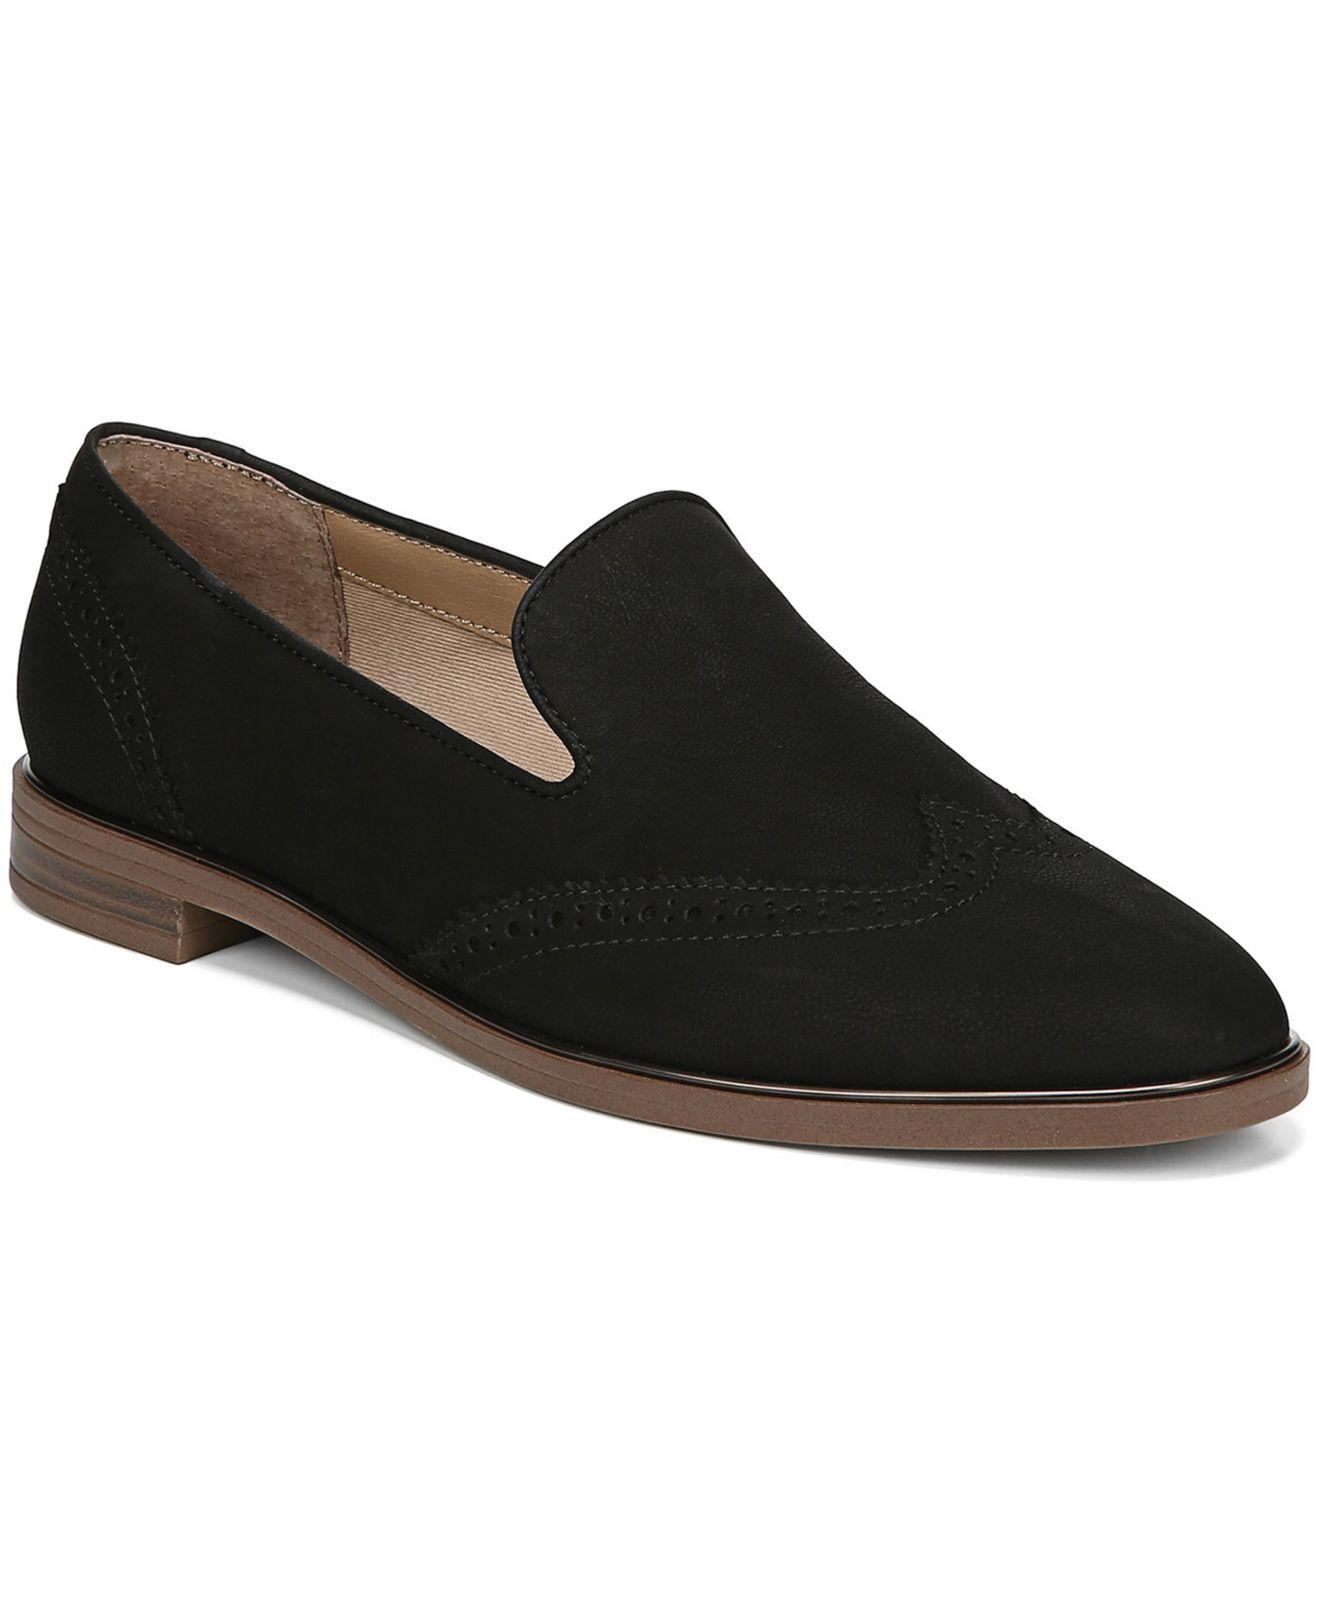 628eacb512a Lyst - Franco Sarto Haydrian Loafers in Black